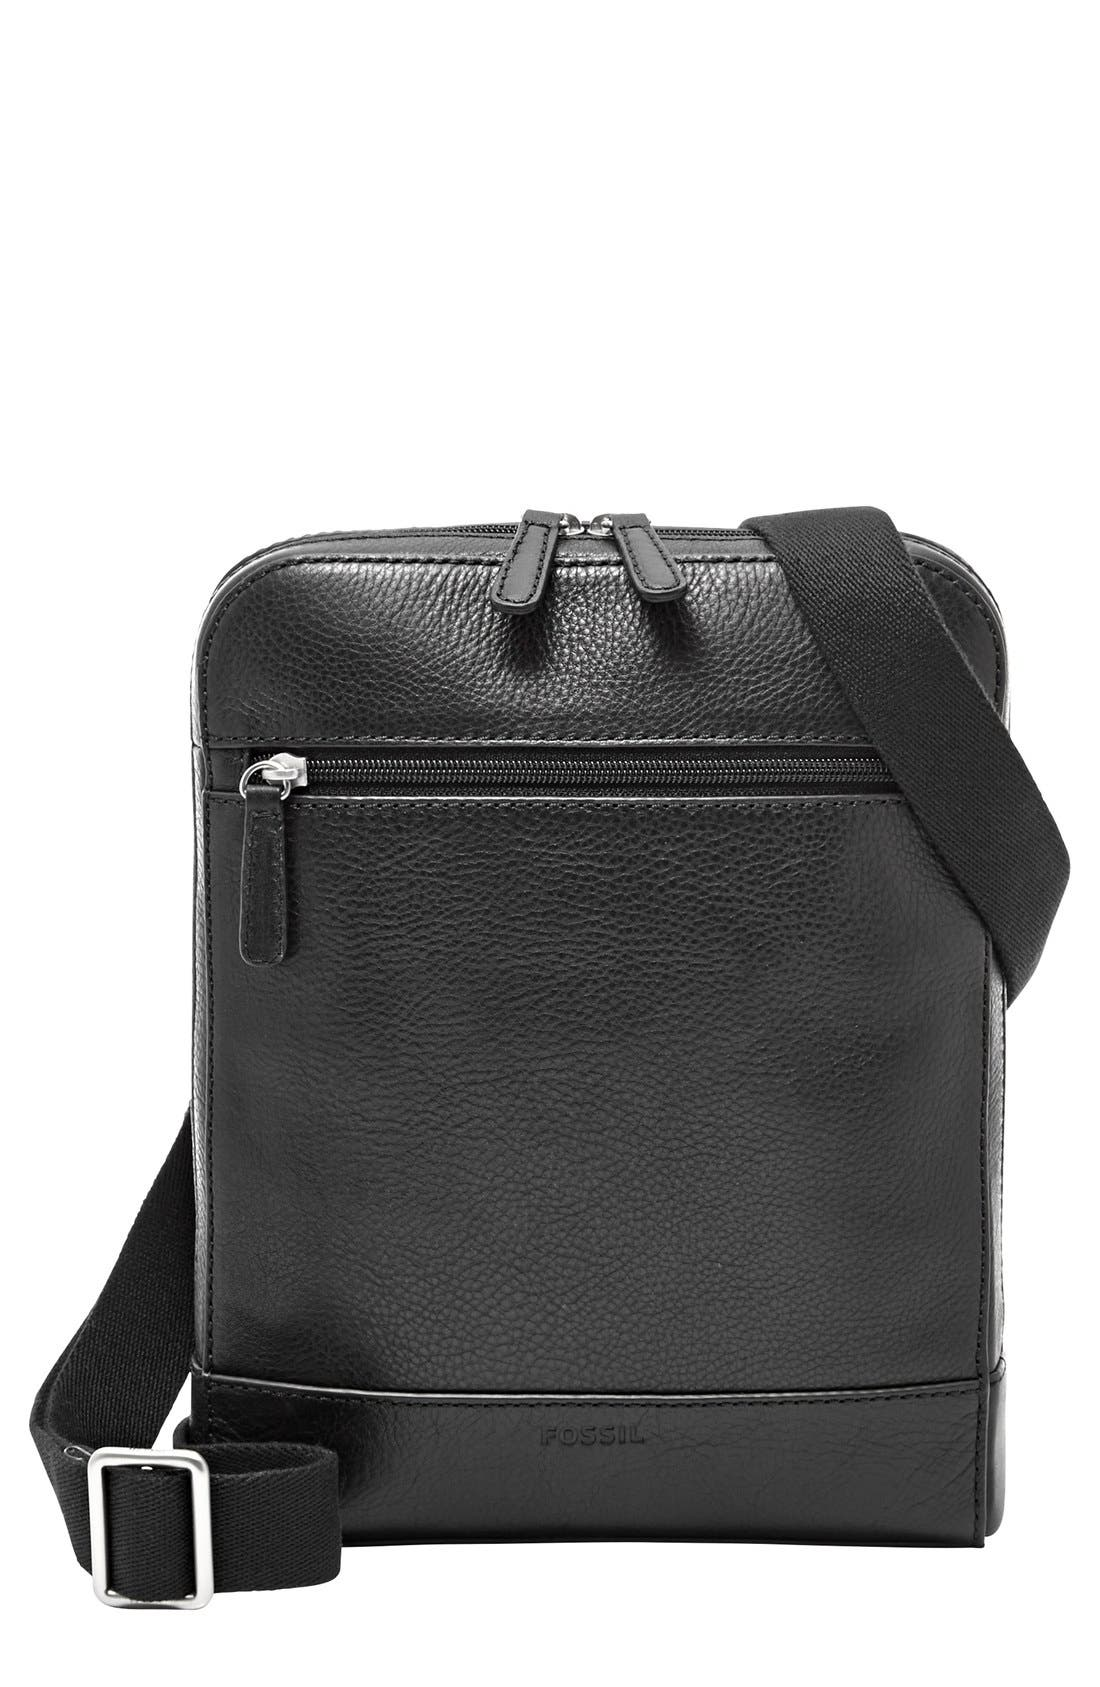 'Rory' Leather Crossbody Bag,                             Main thumbnail 1, color,                             Black